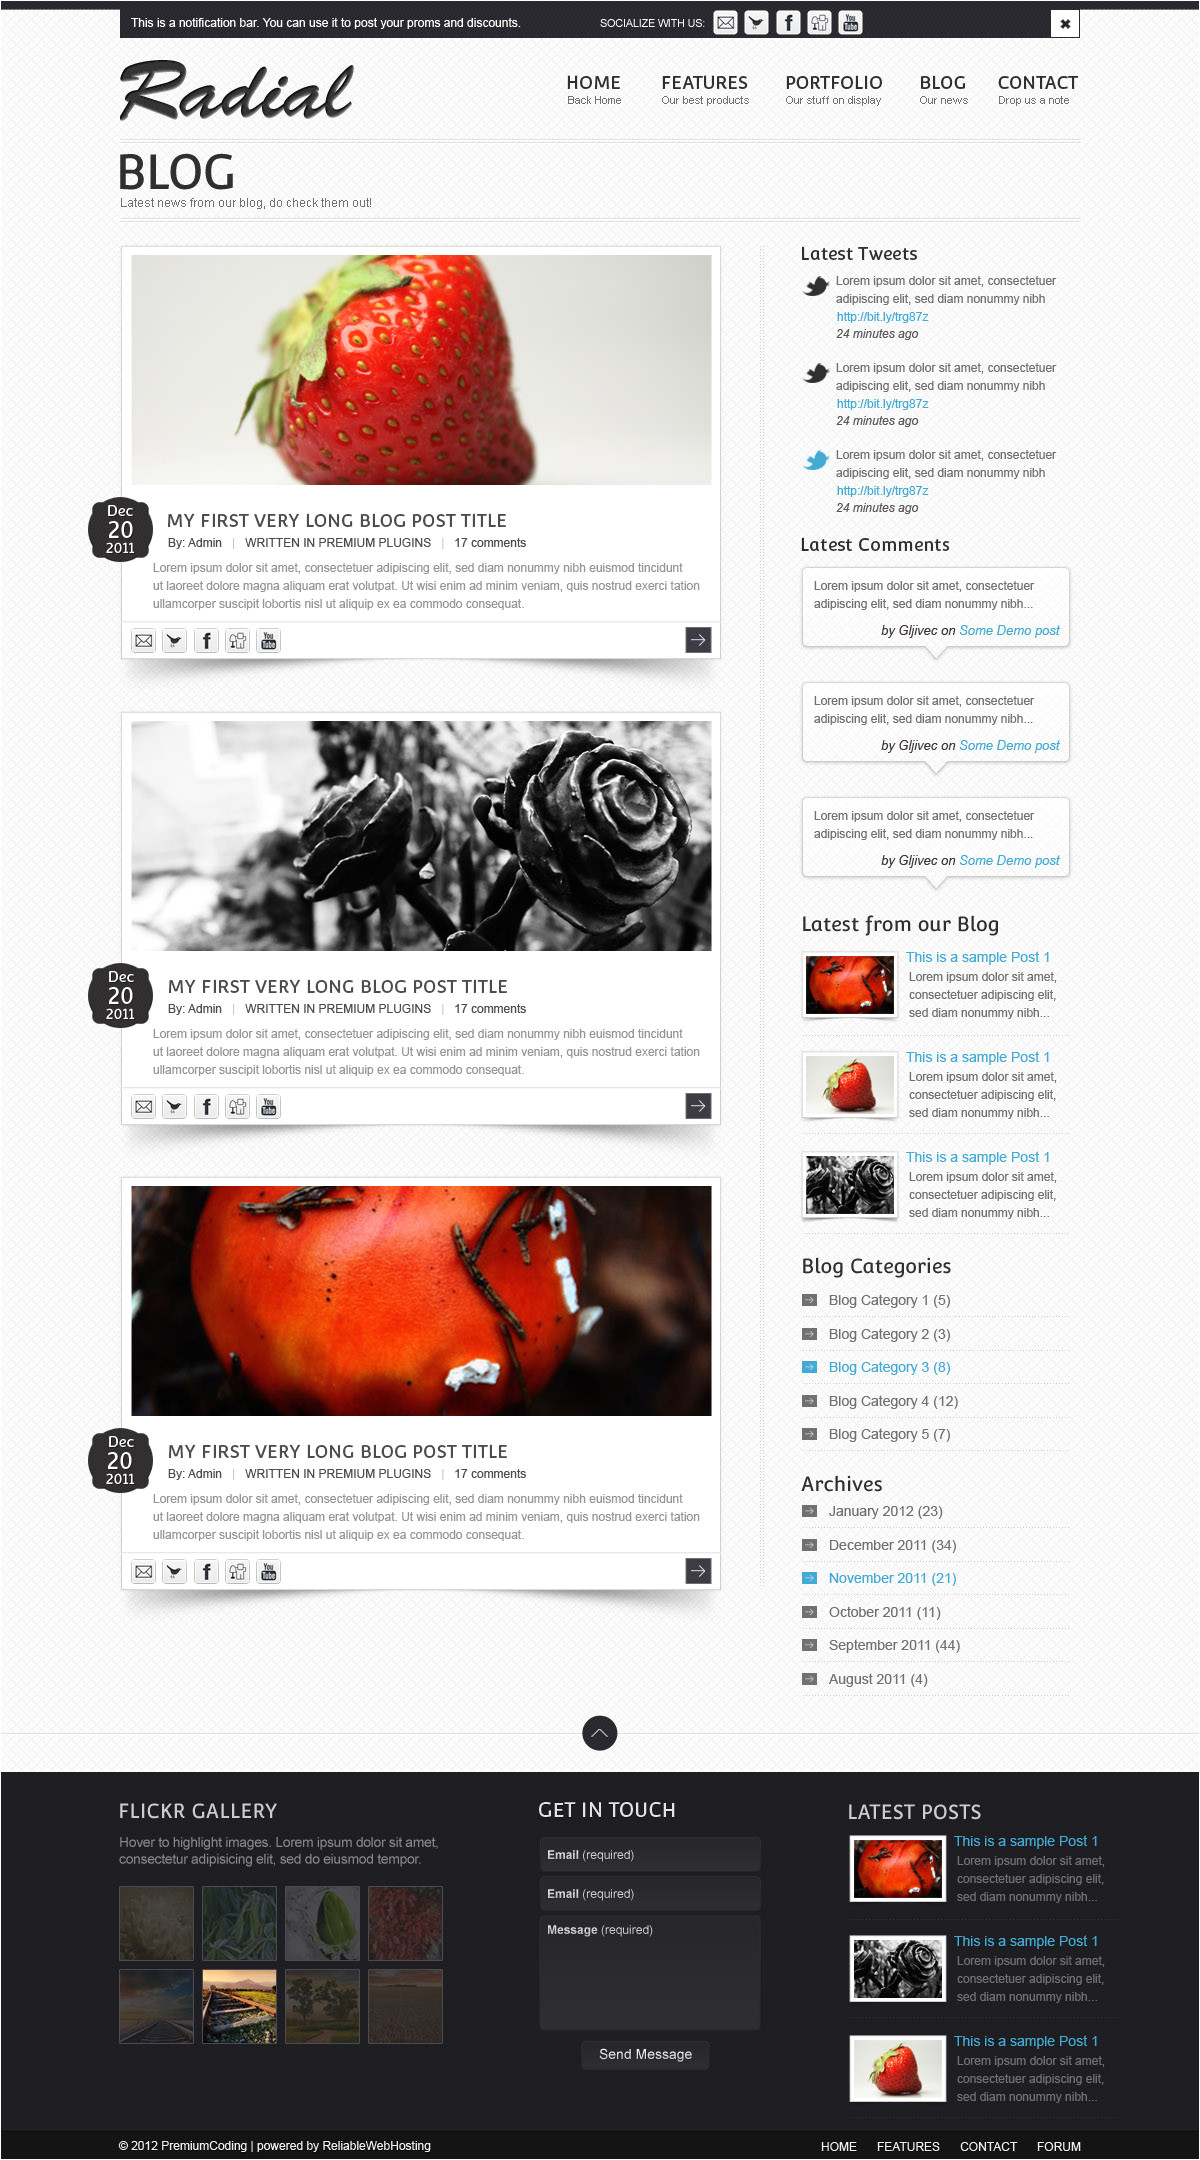 freebie radial blog site template psd